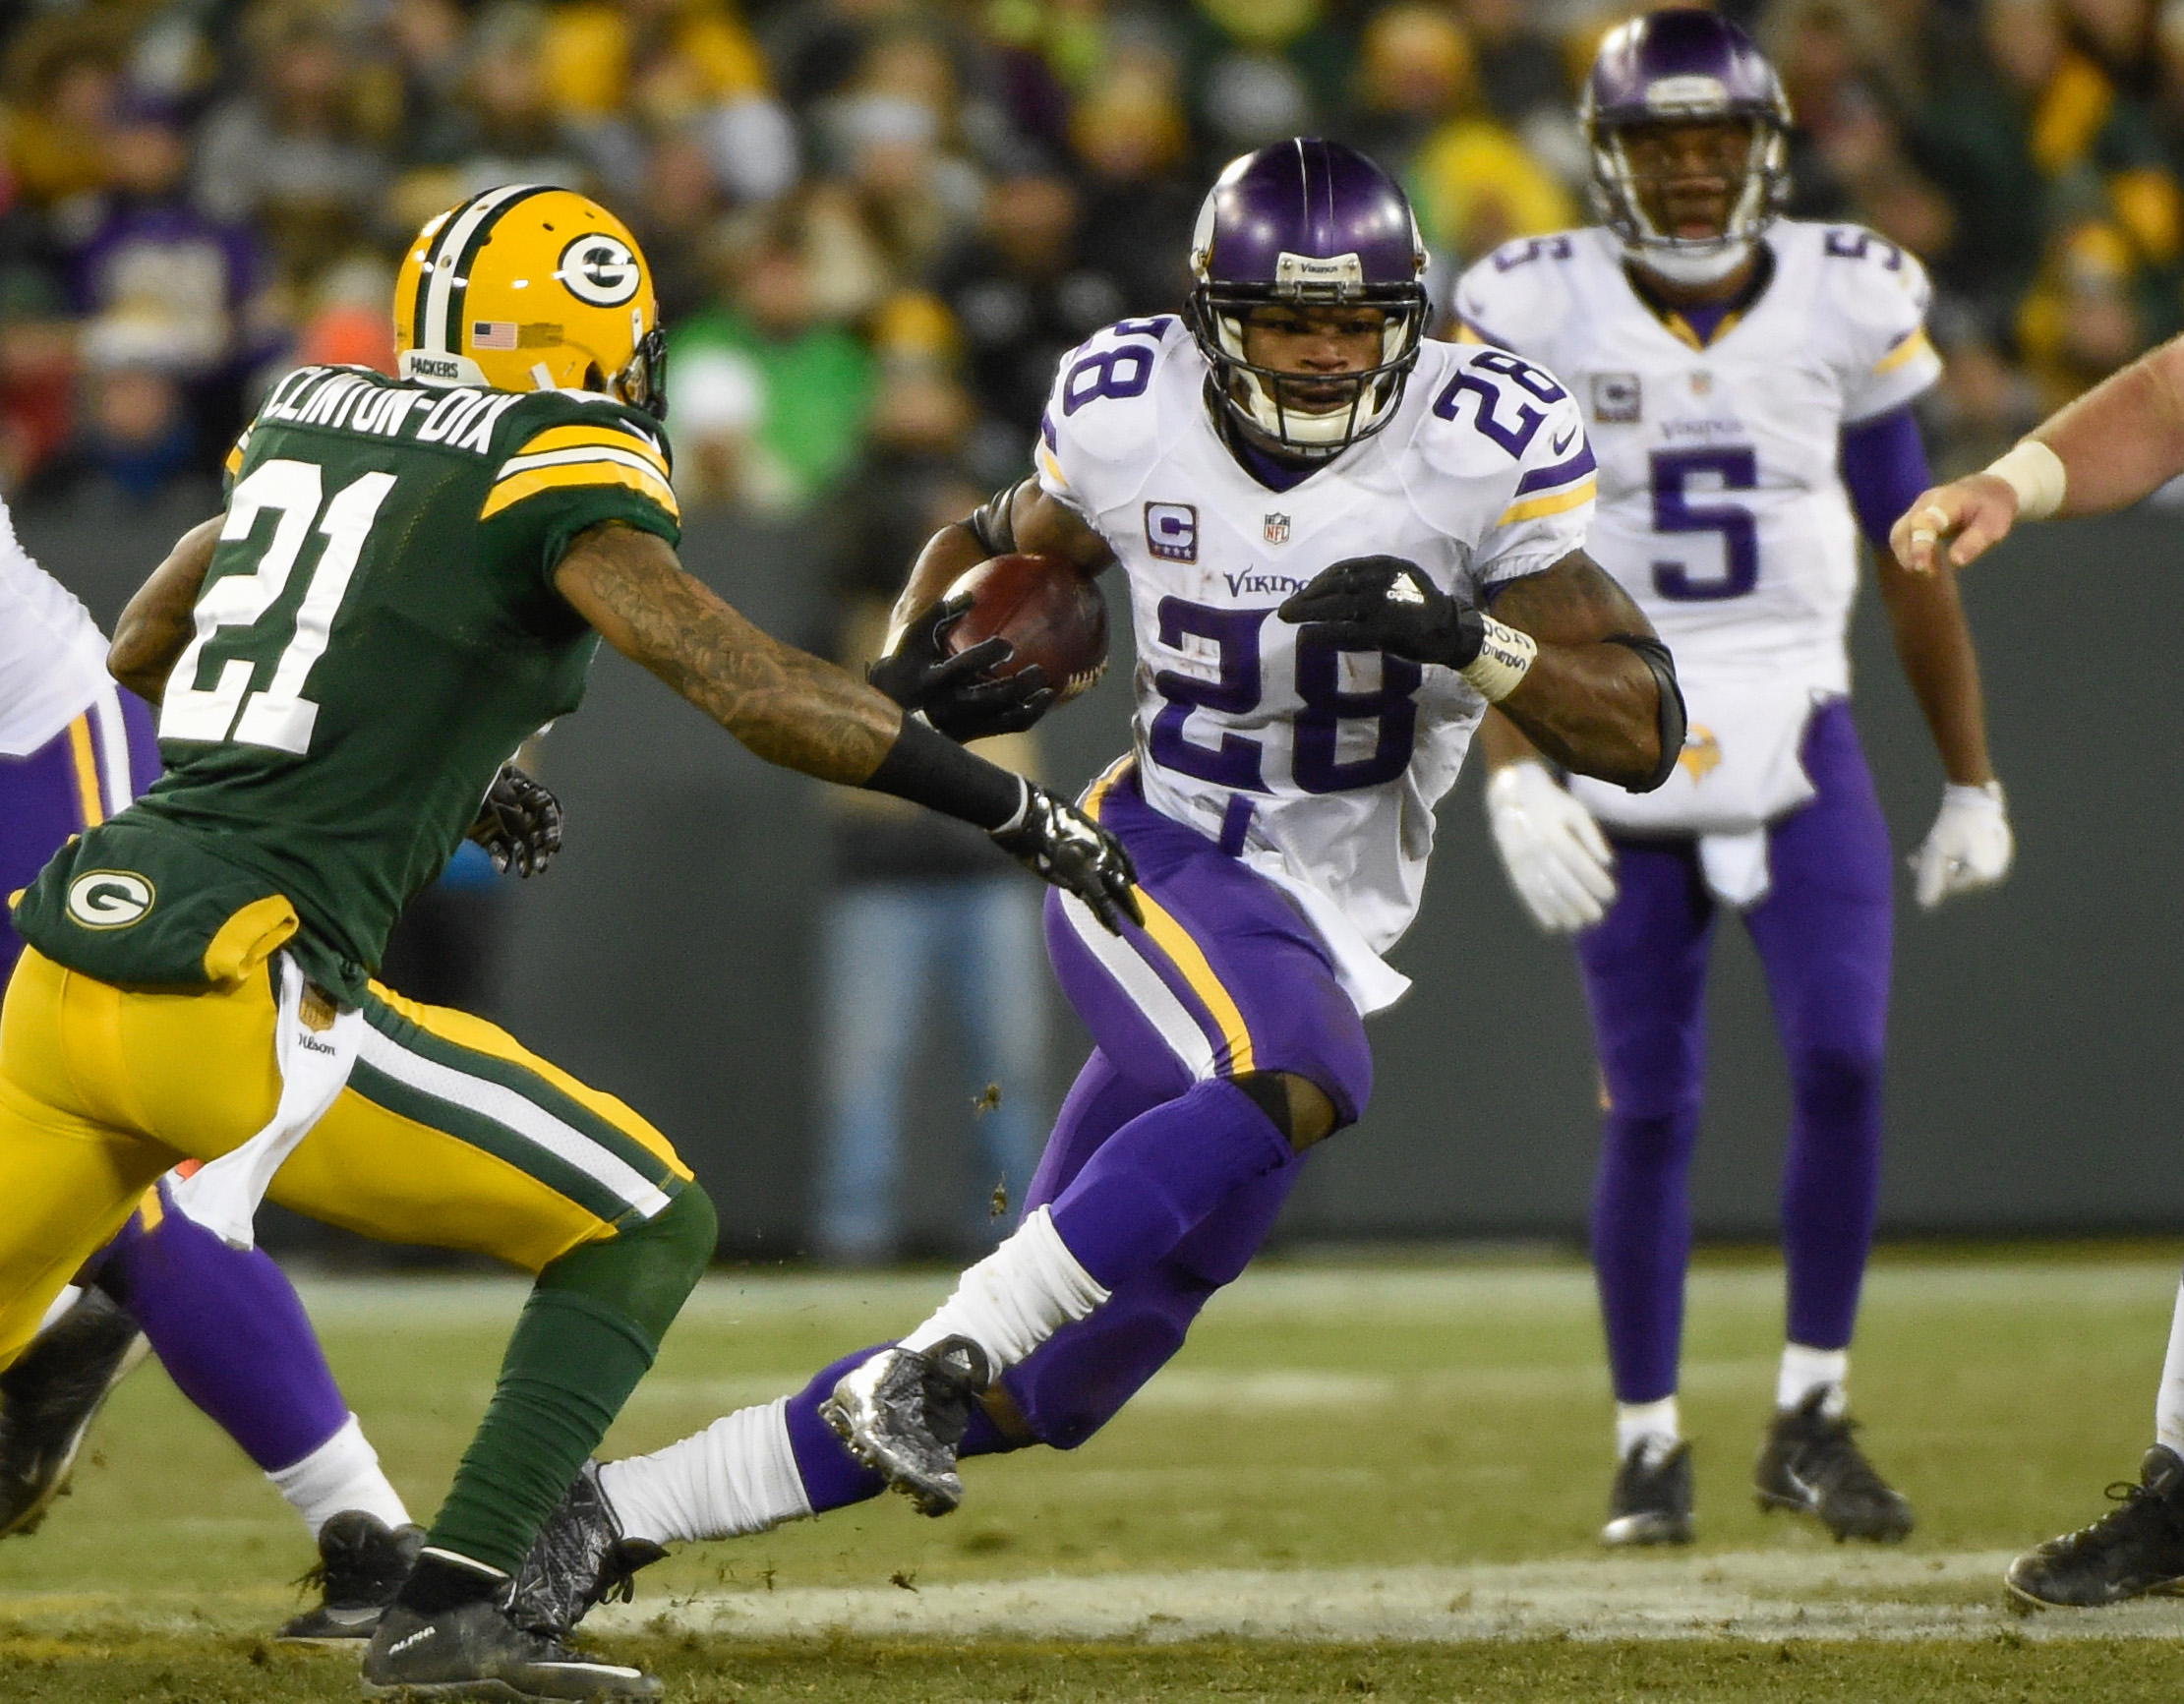 Adrian Peterson, like the Energizer Bunny, just keeps on going. He's the NFC North's most valuable fantasy player heading into 2016.